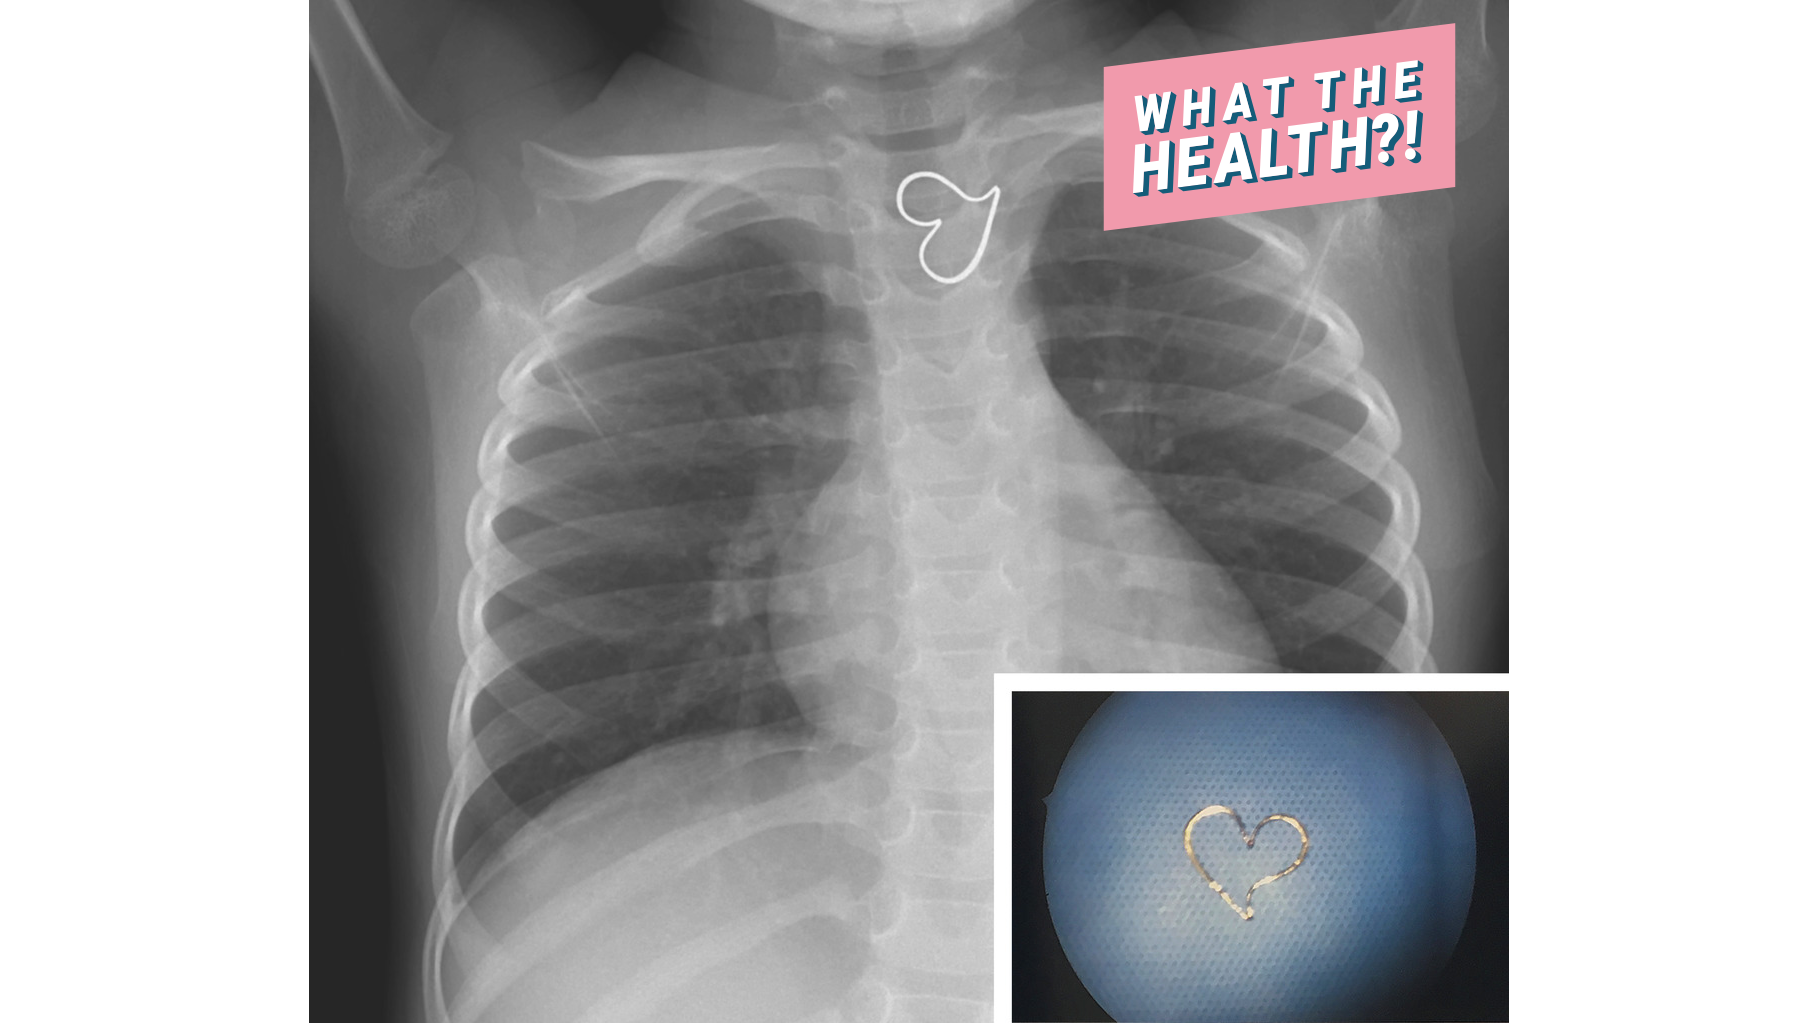 A Perfect Heart Shape Showed Up on This Girl's X-Ray